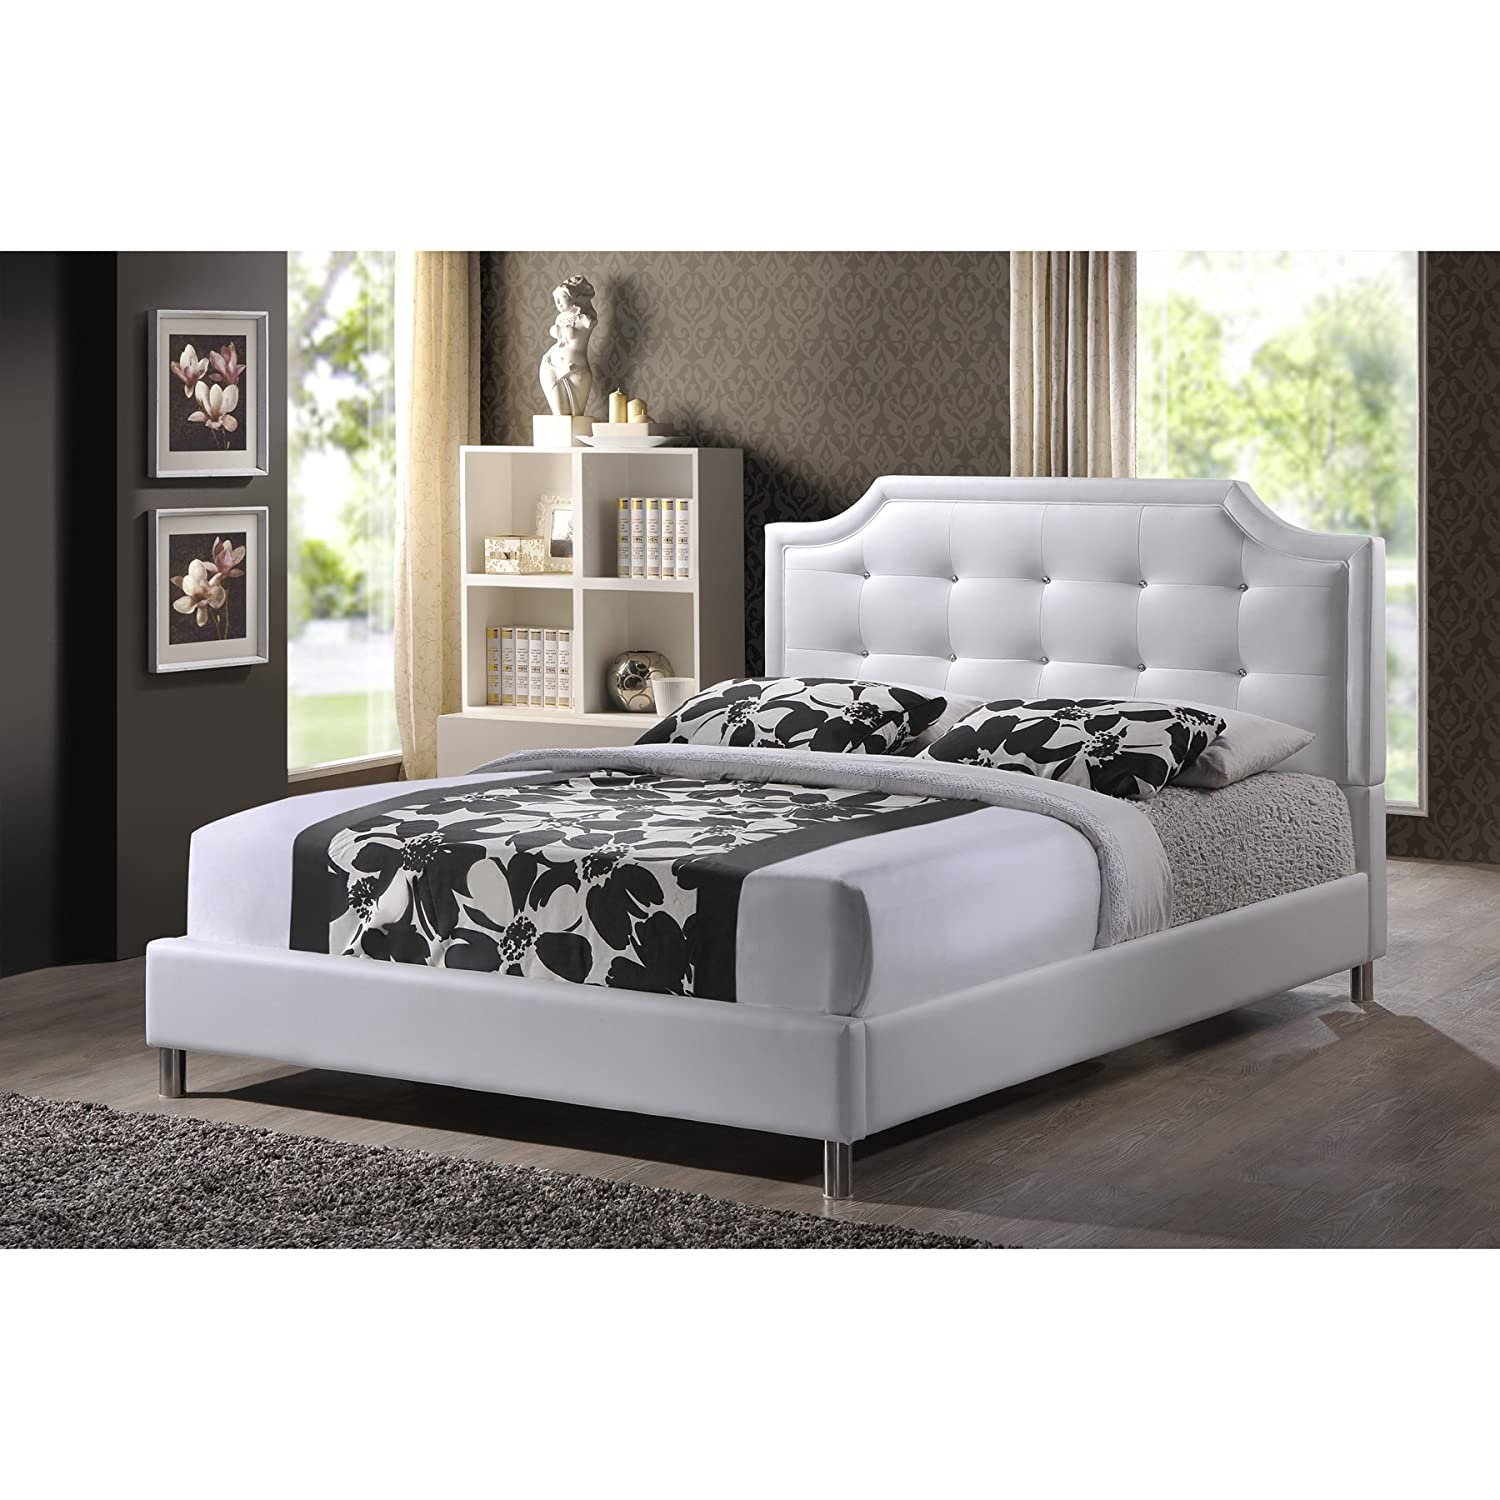 Perfect White Bed Frame Decoration Ideas